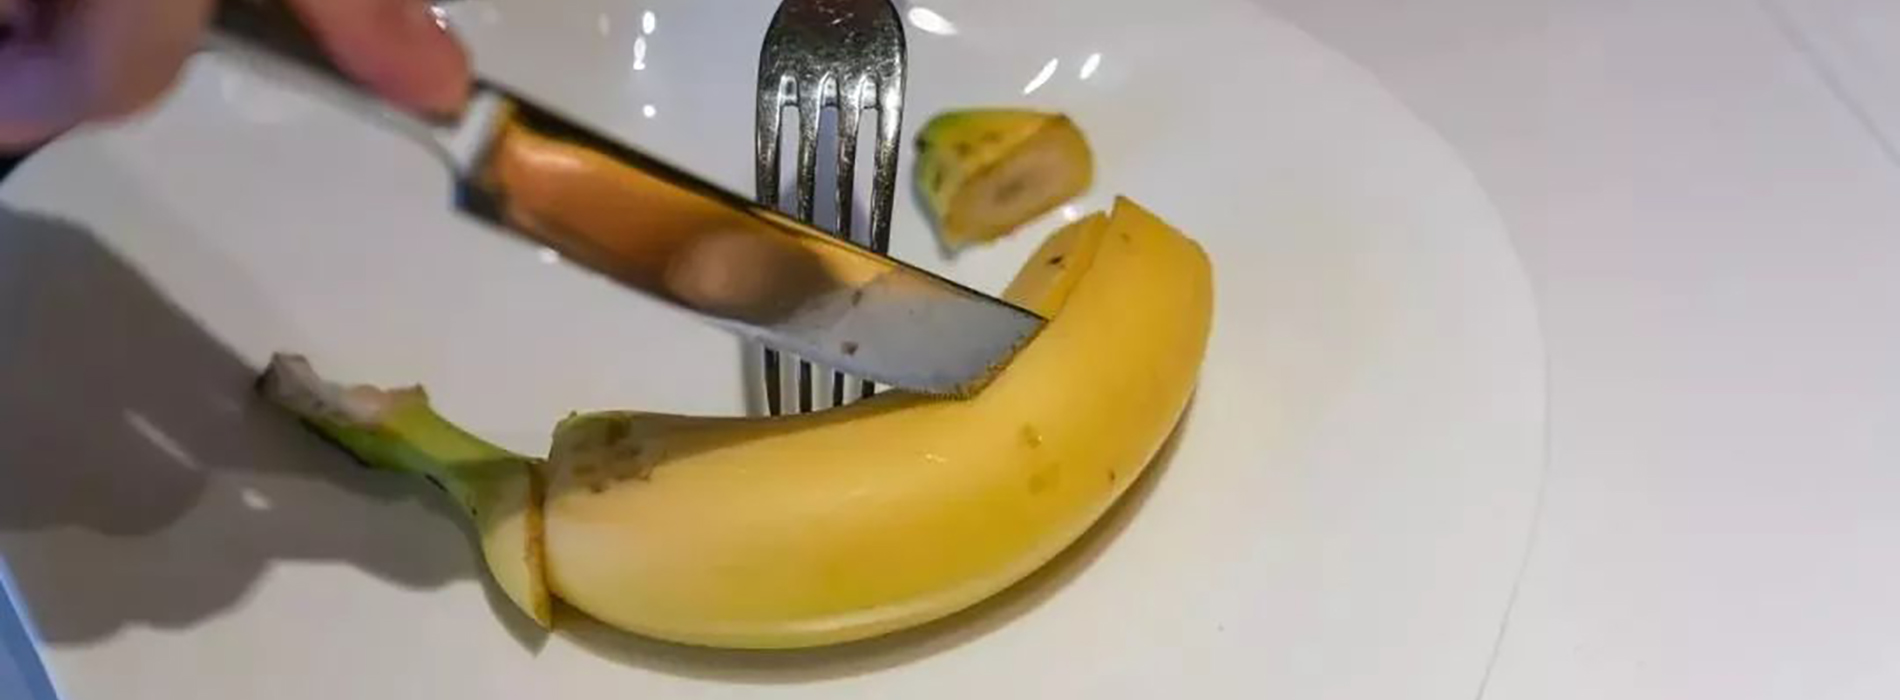 How to eat a banana in a posh restaurant. First cut off both ends, then insert the knife into the skin and slit from stem to stern. FInally reveal the flesh and cut into bite-sized chunks, as you eat daintily with a fork.